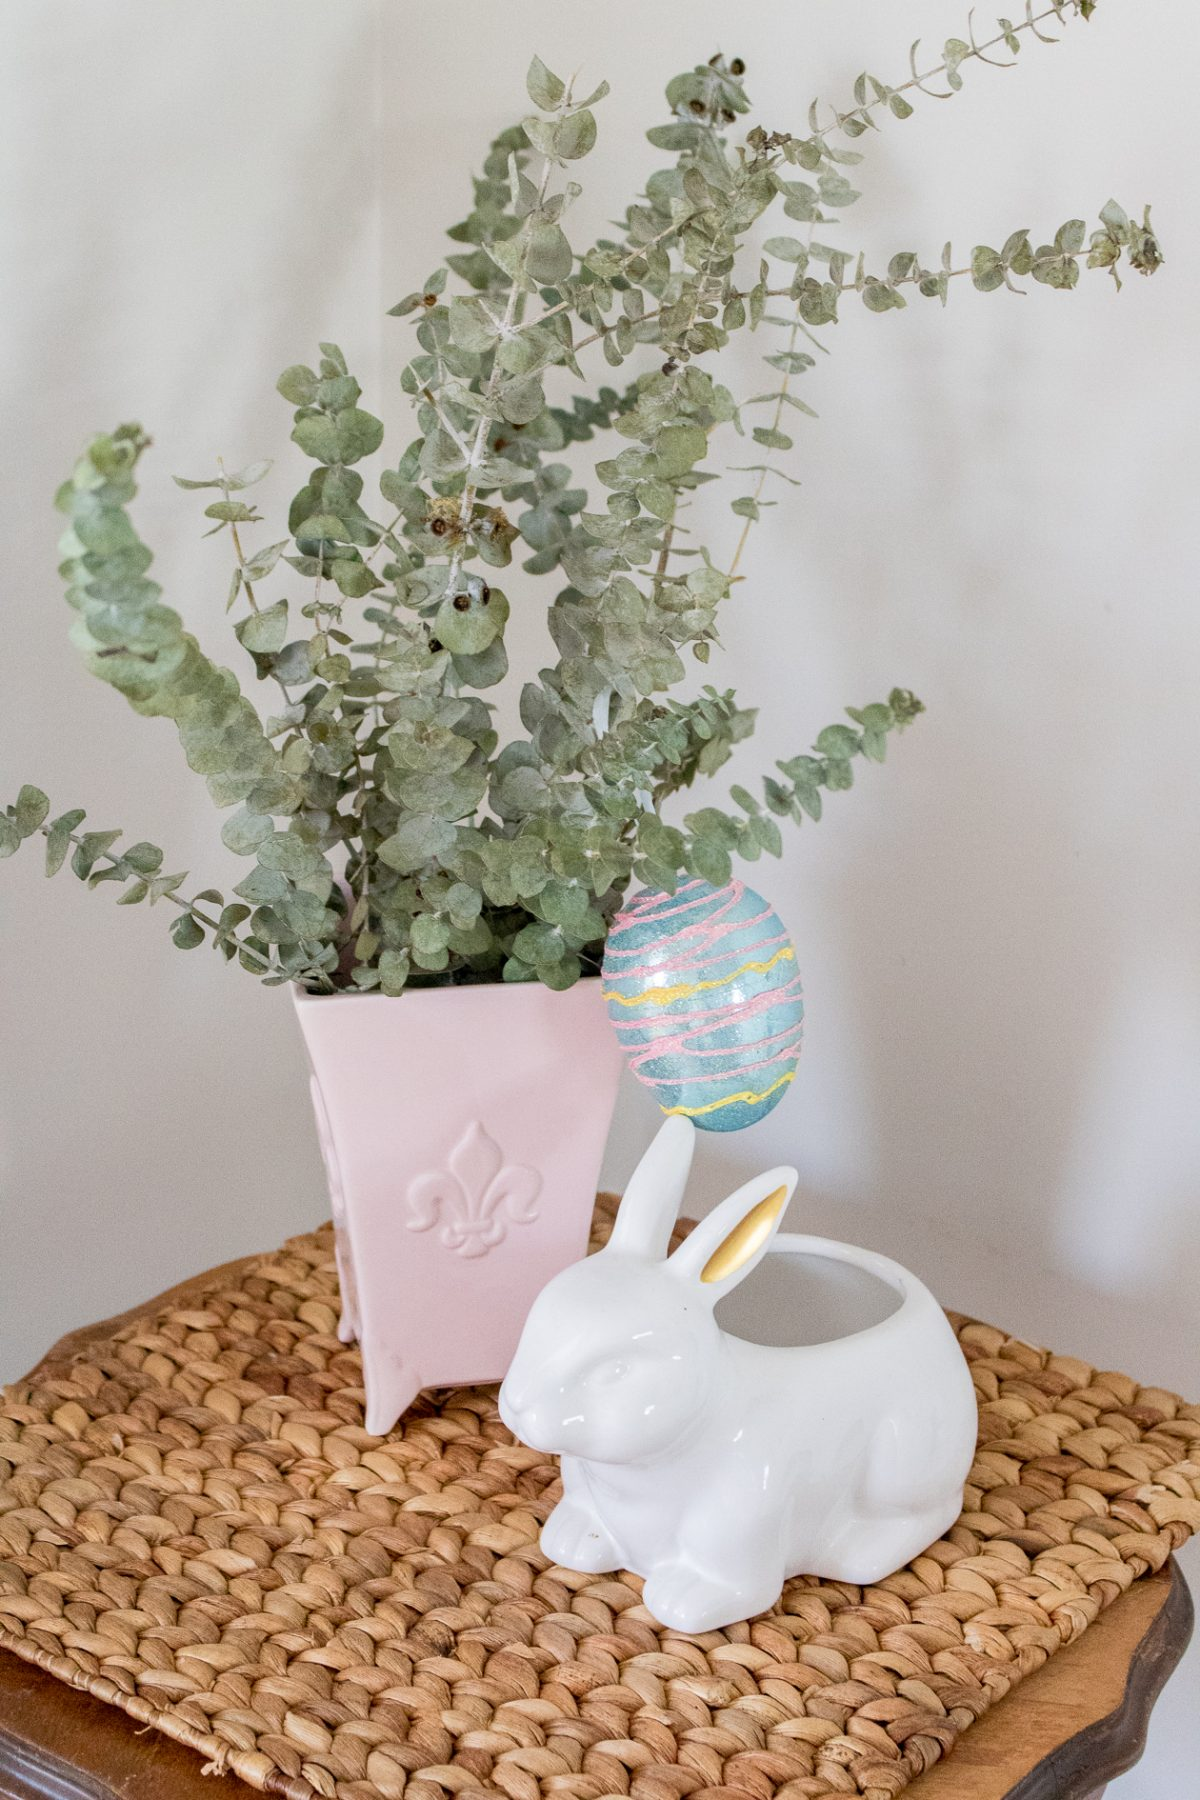 Eucalyptus in pink vase with pastel egg hanging off the branch and a white bunny on a table